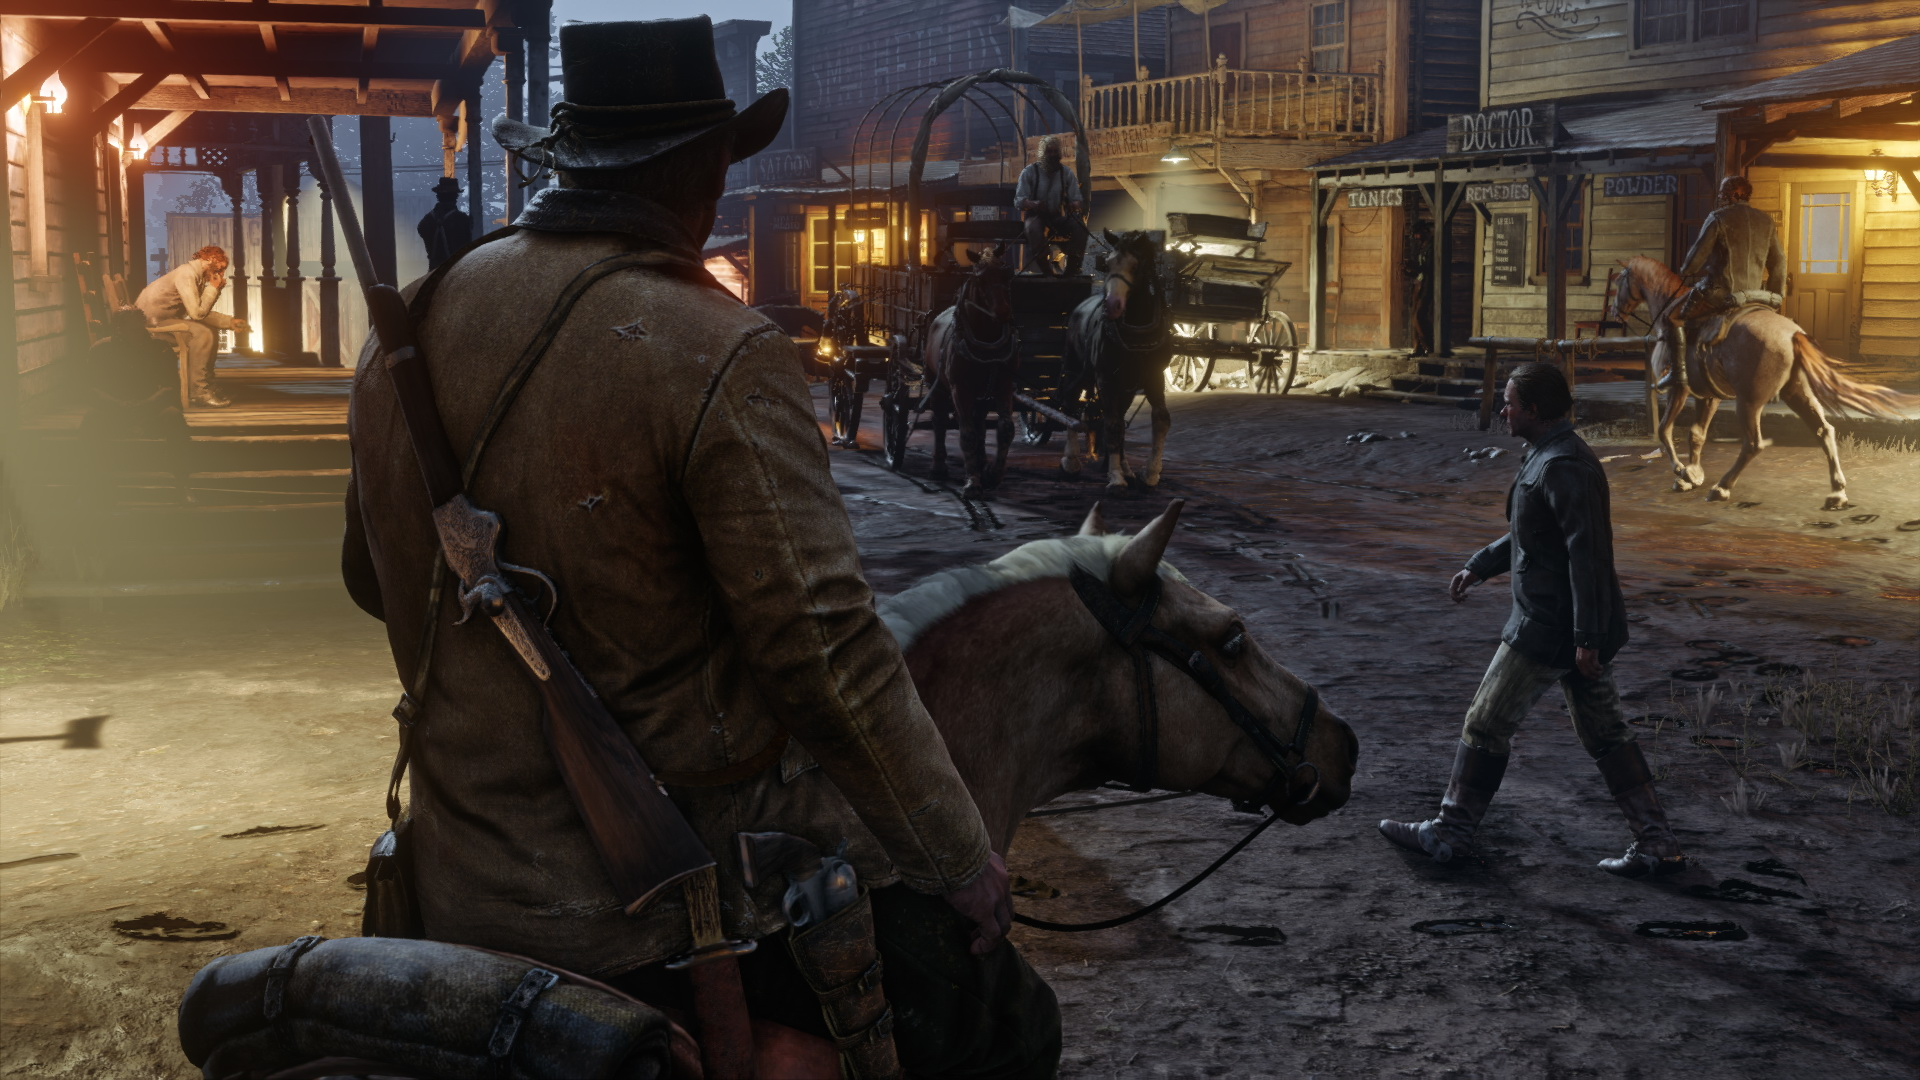 Red-Dead-Redemption-2-PIC4.jpg